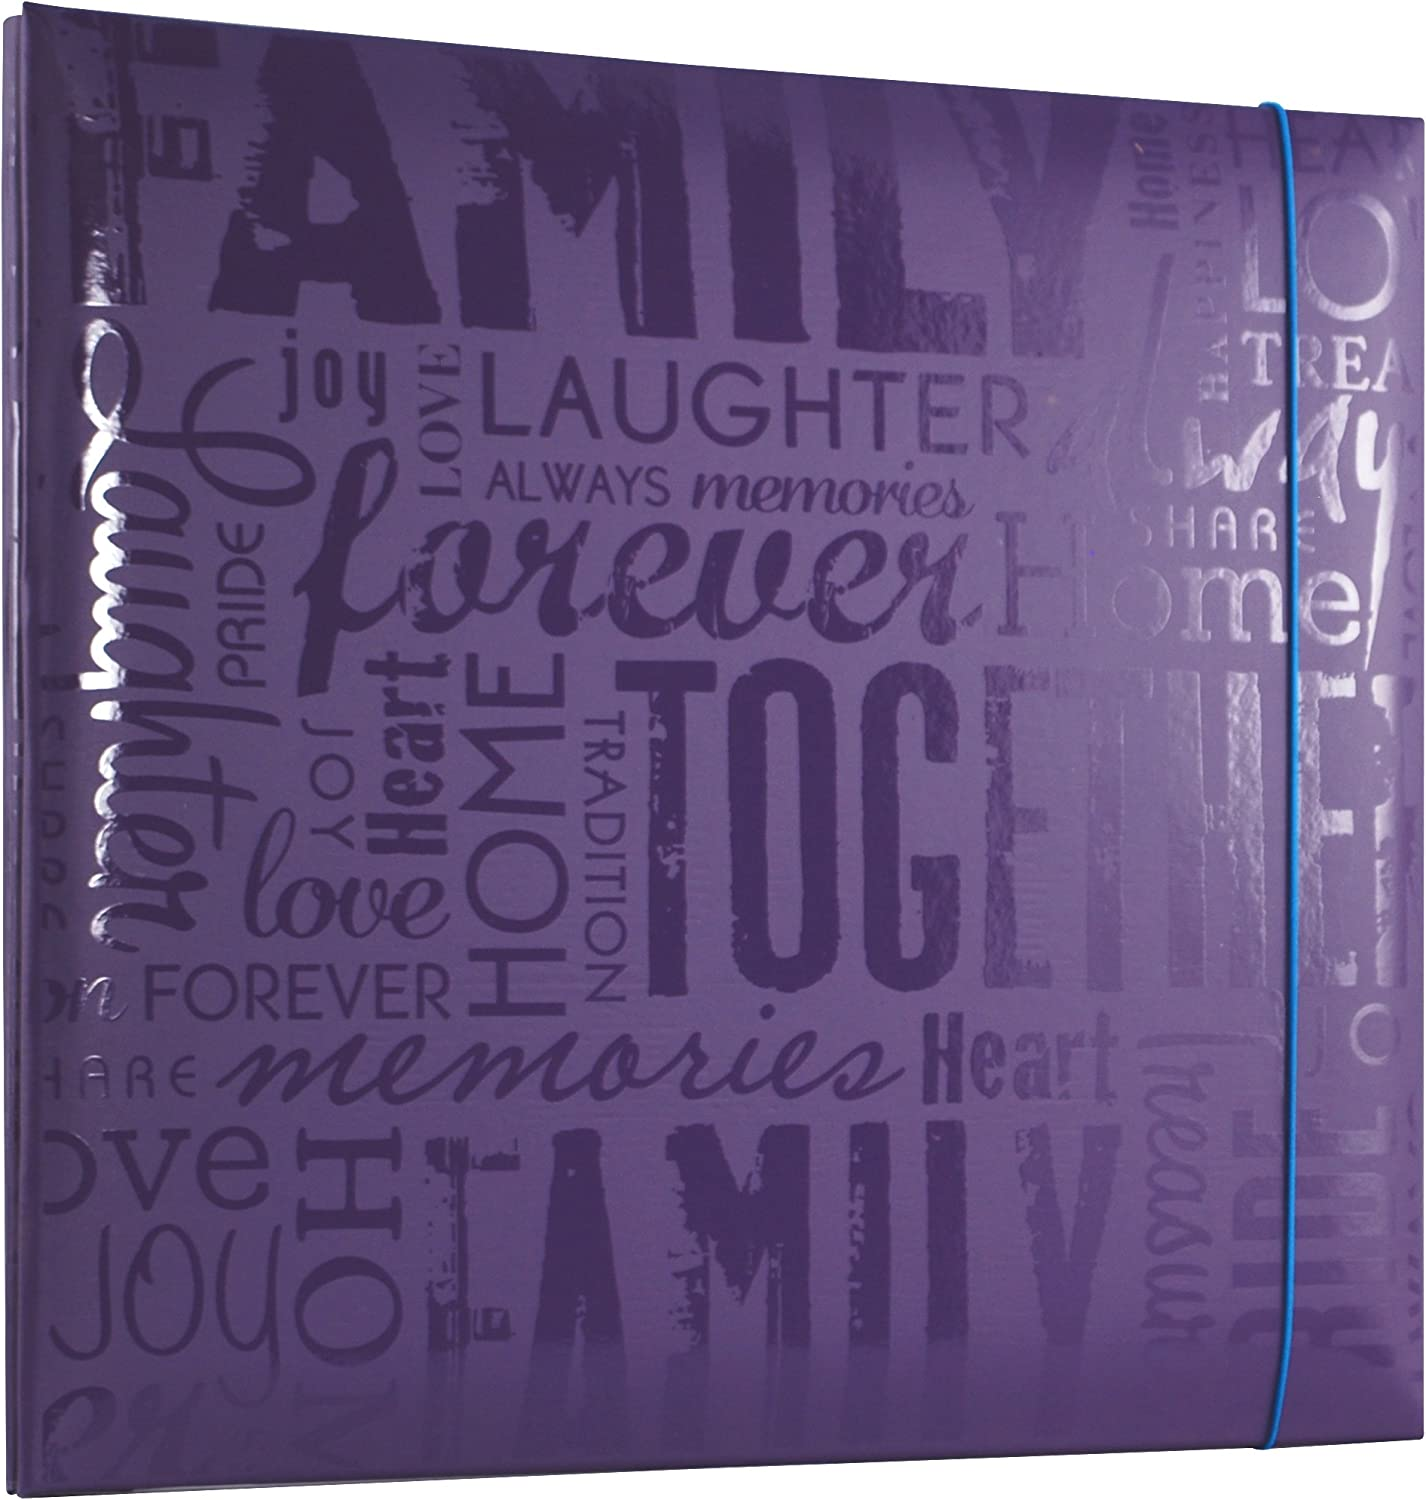 Embossed Family 848116 Deep Purple MCS MBI 13.5x12.5 Inch Embossed Gloss Expressions Scrapbook Album with 12x12 Inch Pages